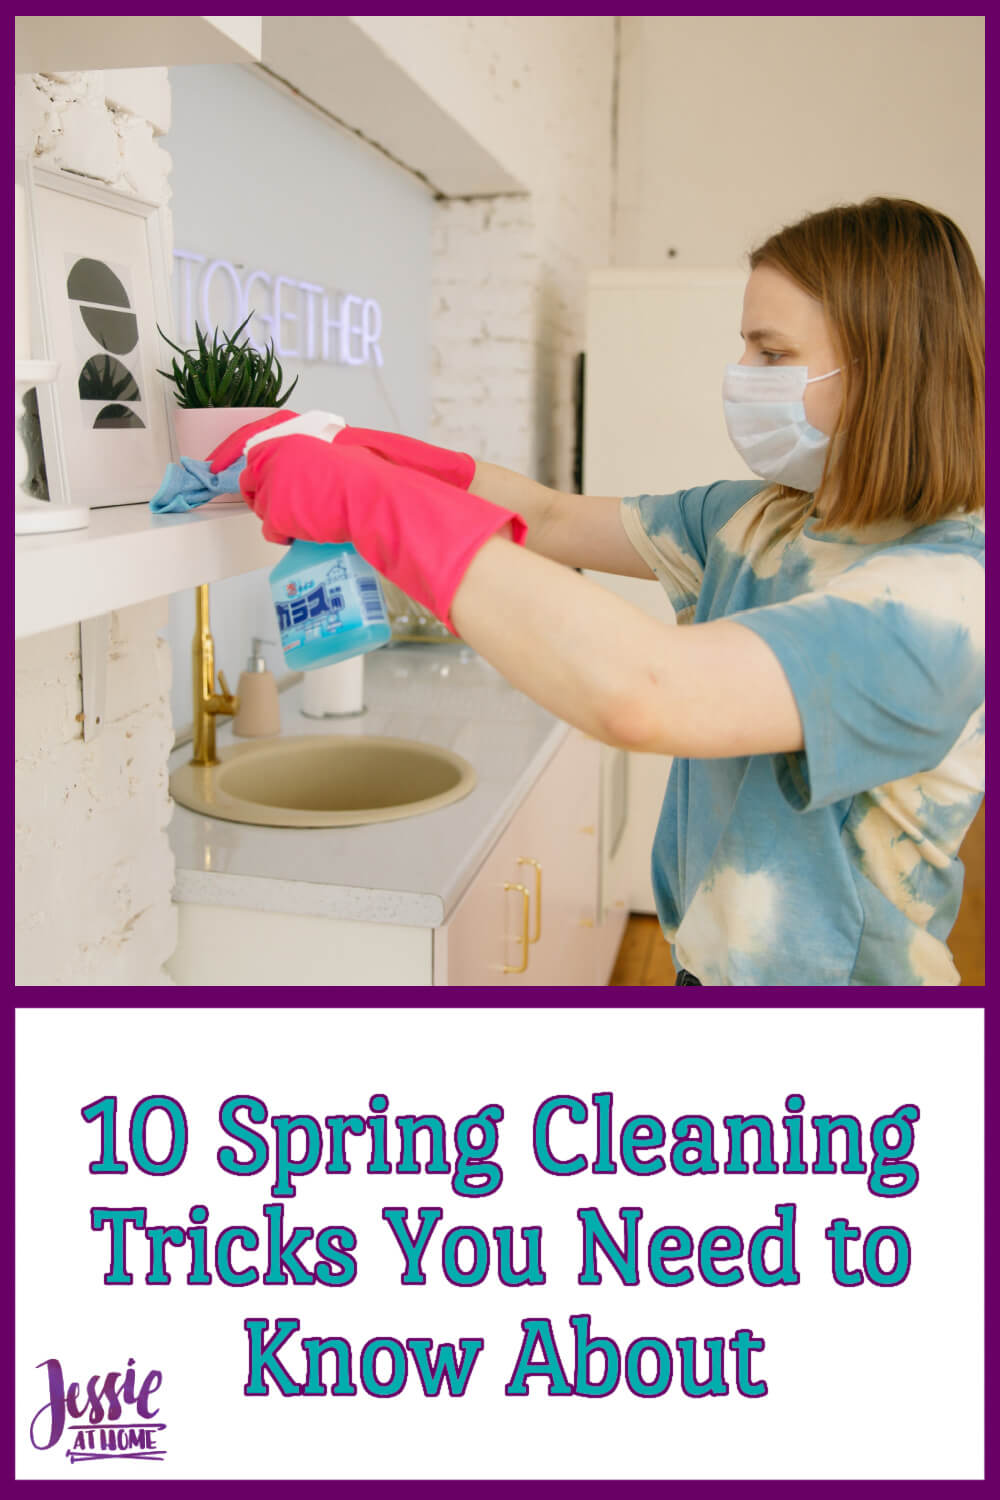 10 Spring Cleaning Tricks You Need to Know About